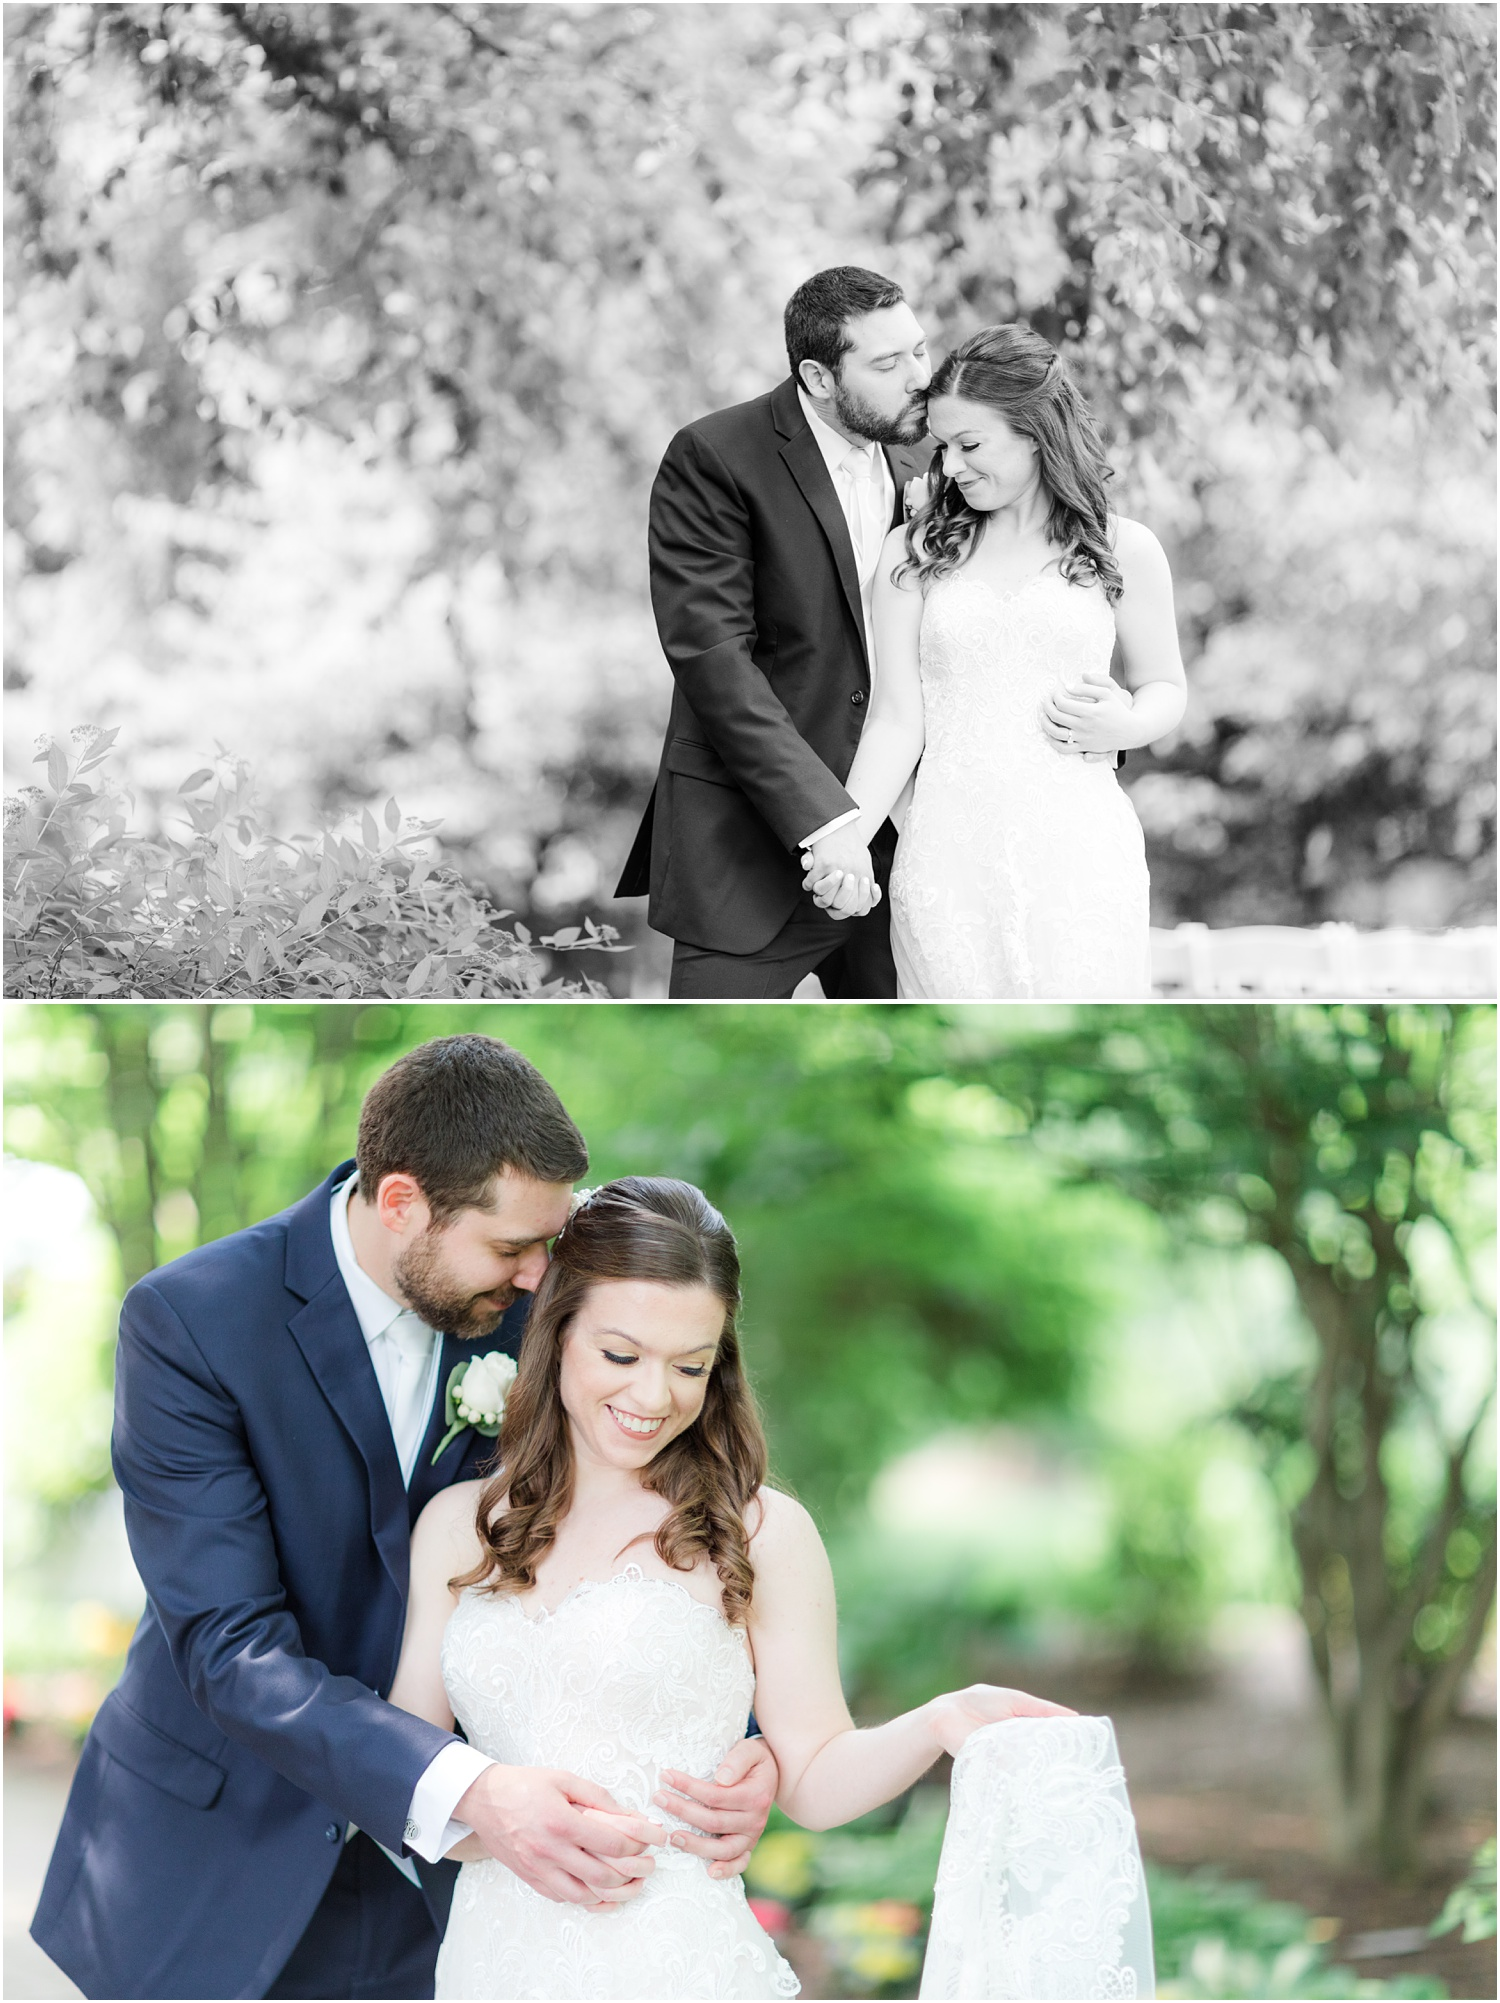 Bride and groom portraits at The Grain House in Basking Ridge, NJ.